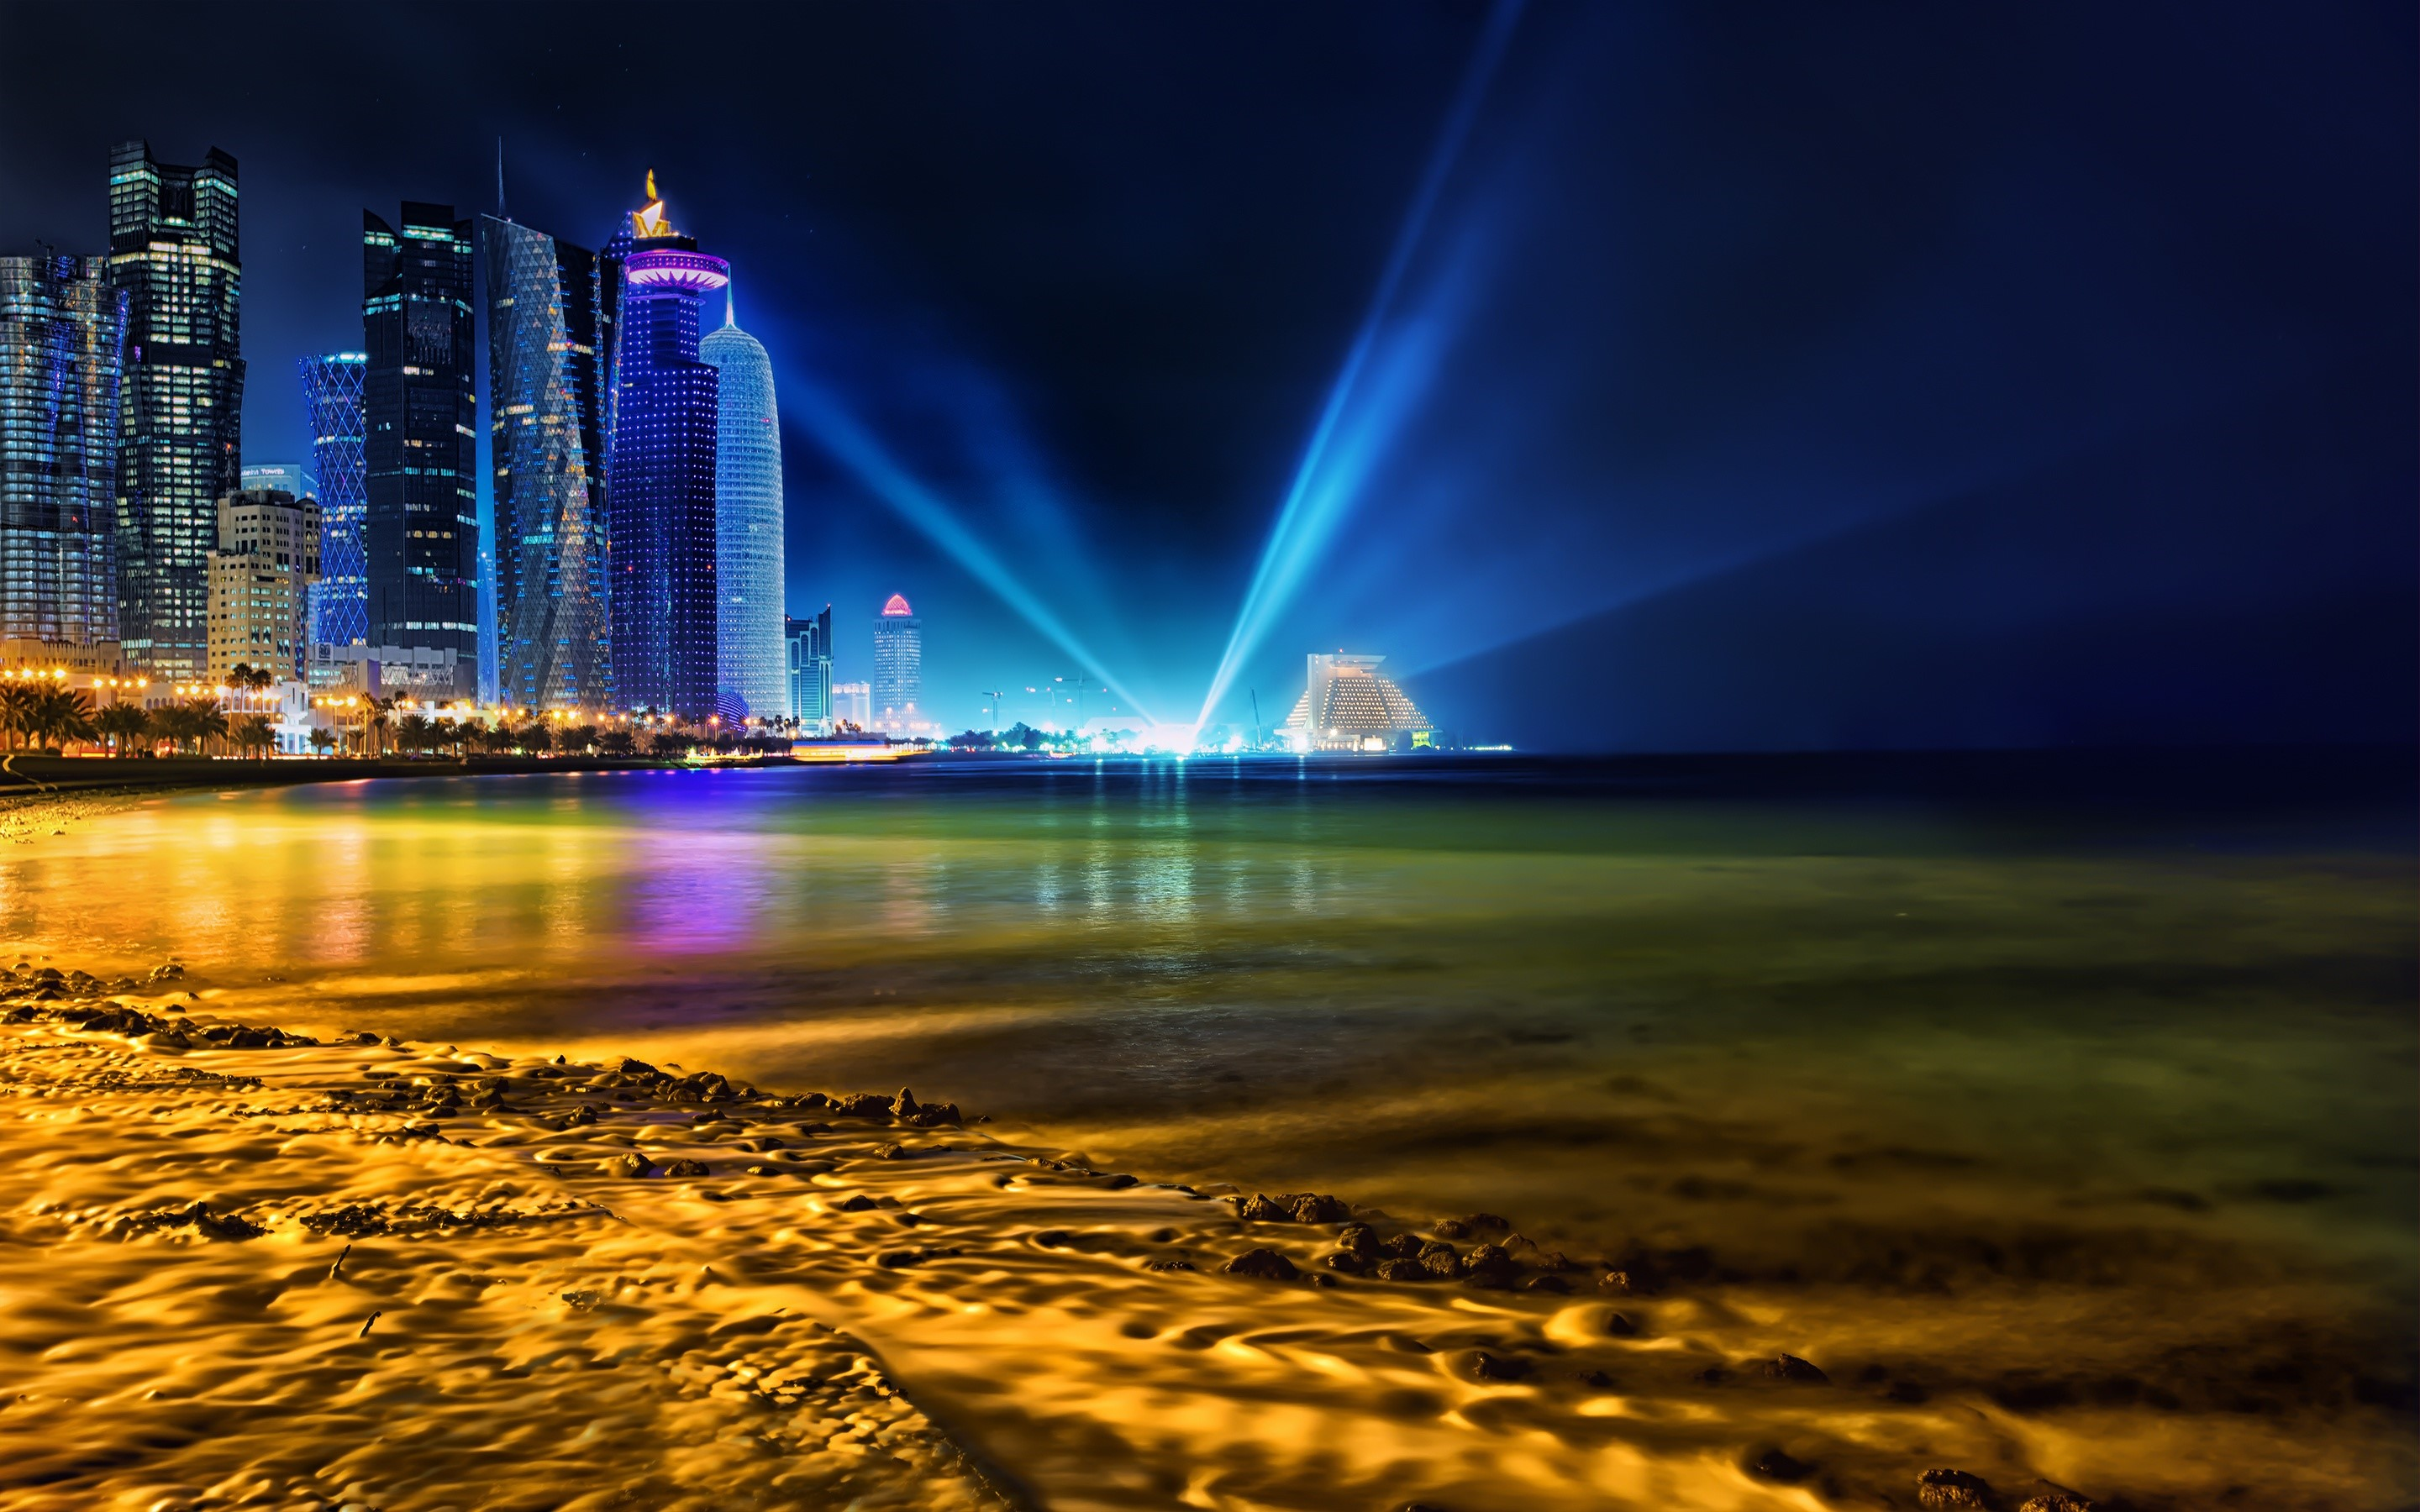 Wallpaper Luces en Doha Qatar Images